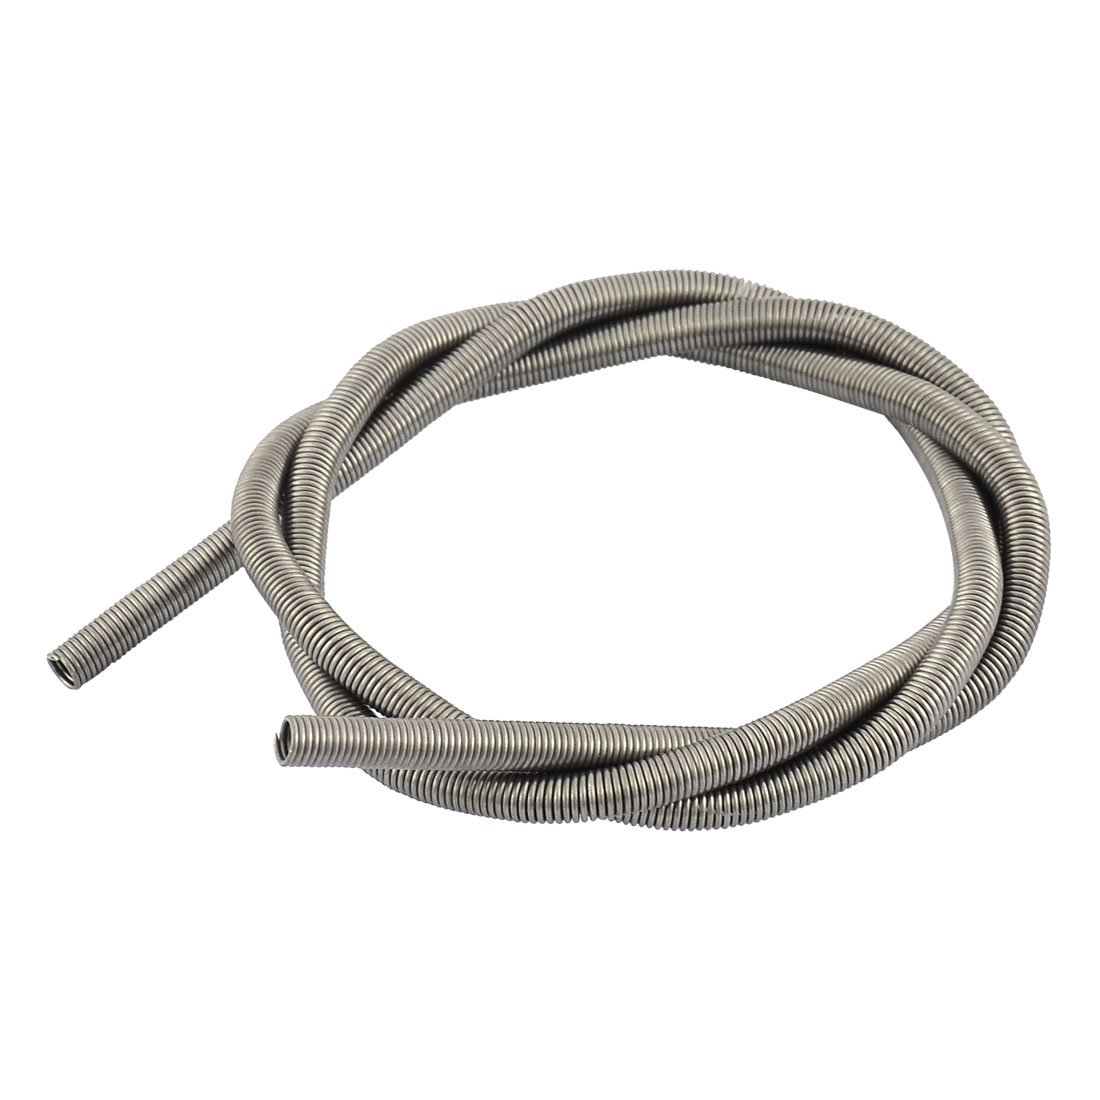 uxcell a16030900ux0341 2500W Kilns Furnaces Casting Flexible Heating Element Coil Wire 71.5cm Long